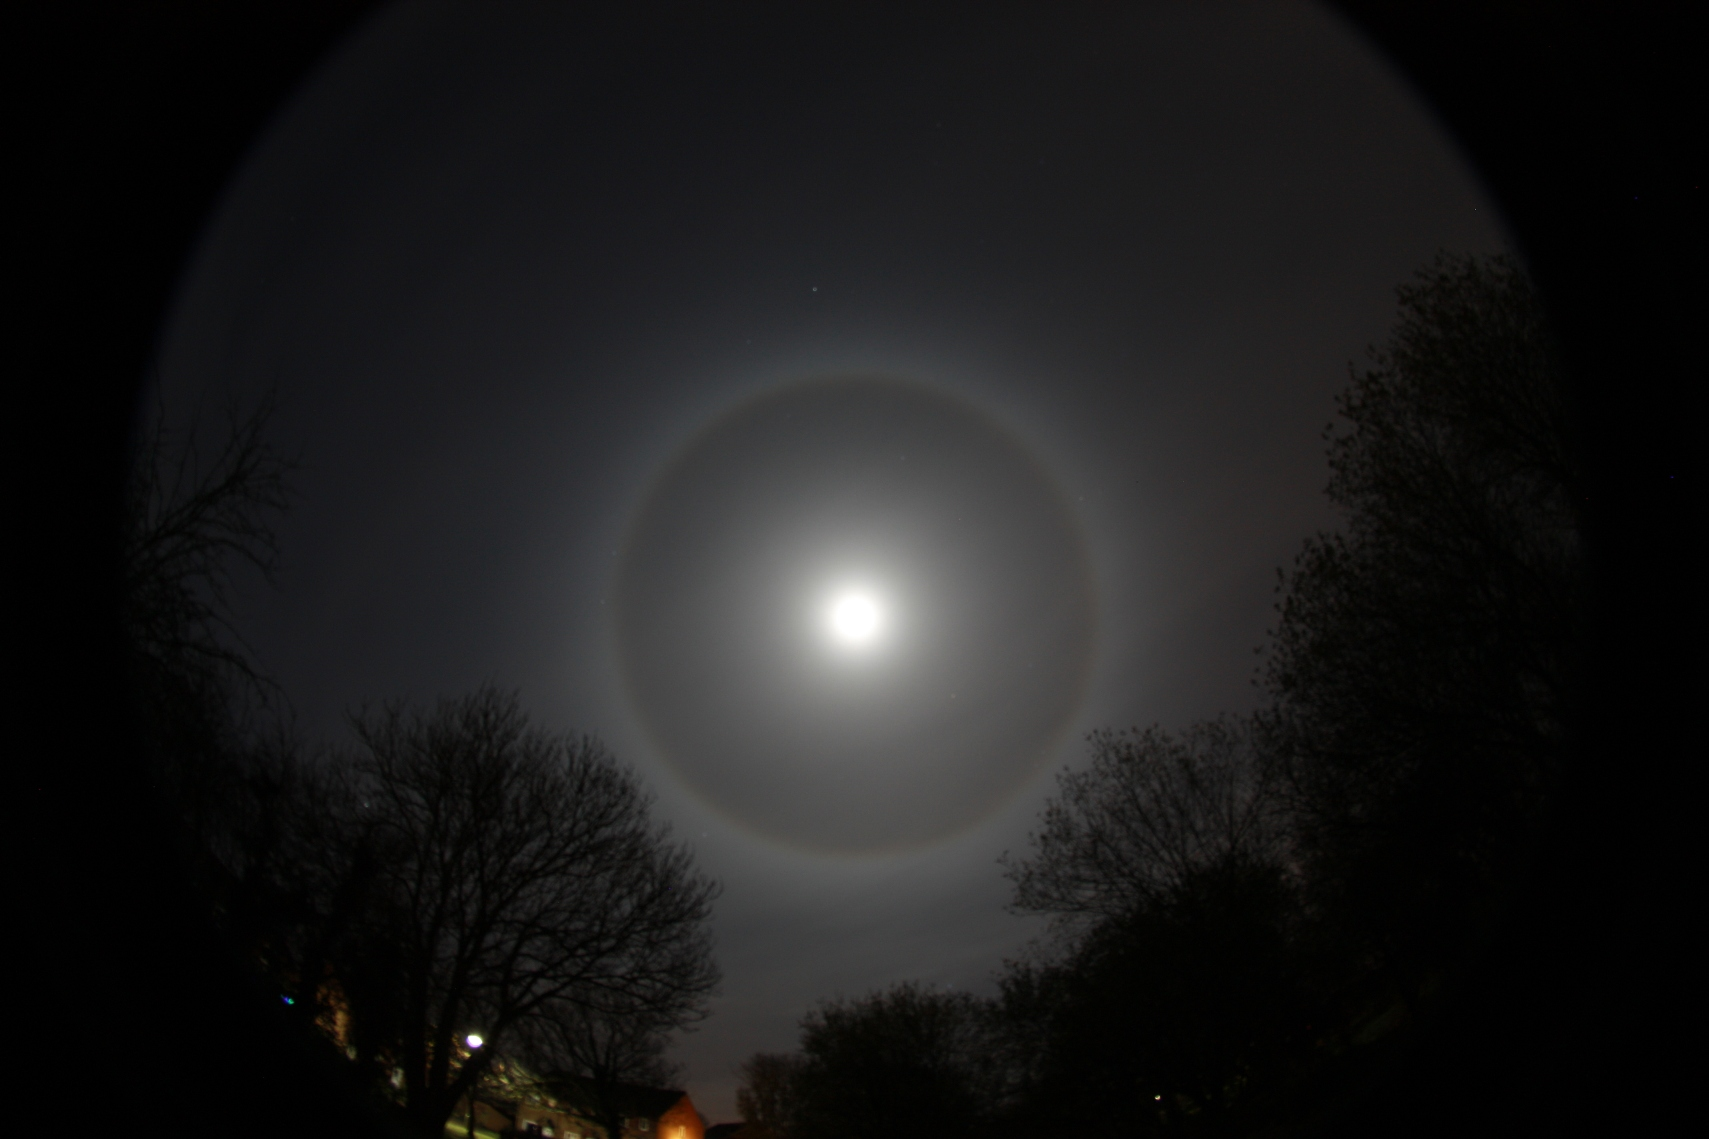 Moon Halo 8 Dec 2014